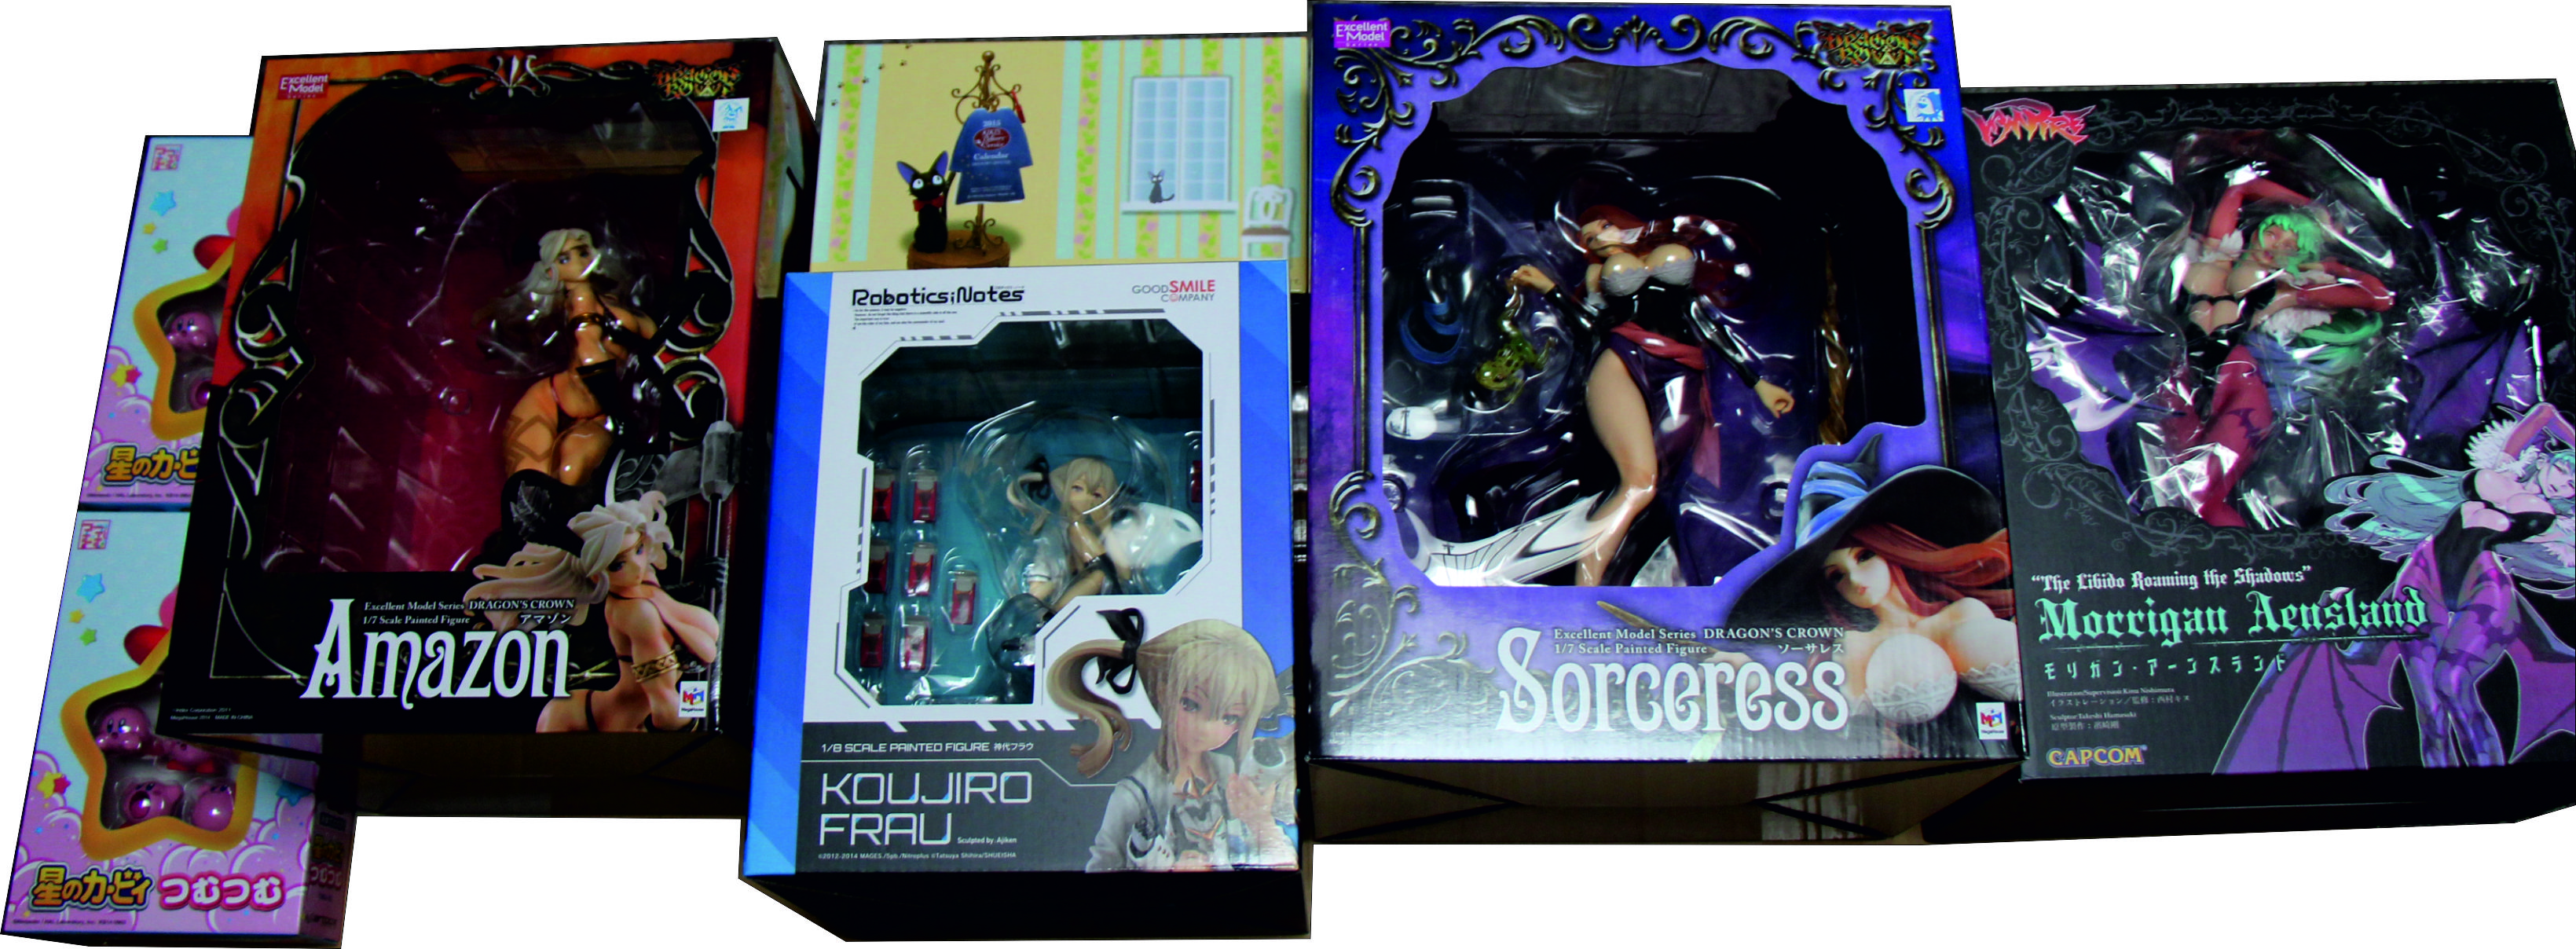 vampire megahouse calendar nintendo ghibli sorceress capcom atlus good_smile_company excellent_model amazon nitroplus ajiken kibayashi_norio ensky hamasaki_takeshi majo_no_takkyuubin studio_ghibli jiji morrigan_aensland nishimura_kinu hoshi_no_kirby hal_kenkyuujo try-x 5pb._games vanillaware george_kamitani robotics;notes koujirou_frau capcom_figure_builder_creator's_model gunvarrel dragon's_crown nobuta artbox_entertainment tsumutsumu_series